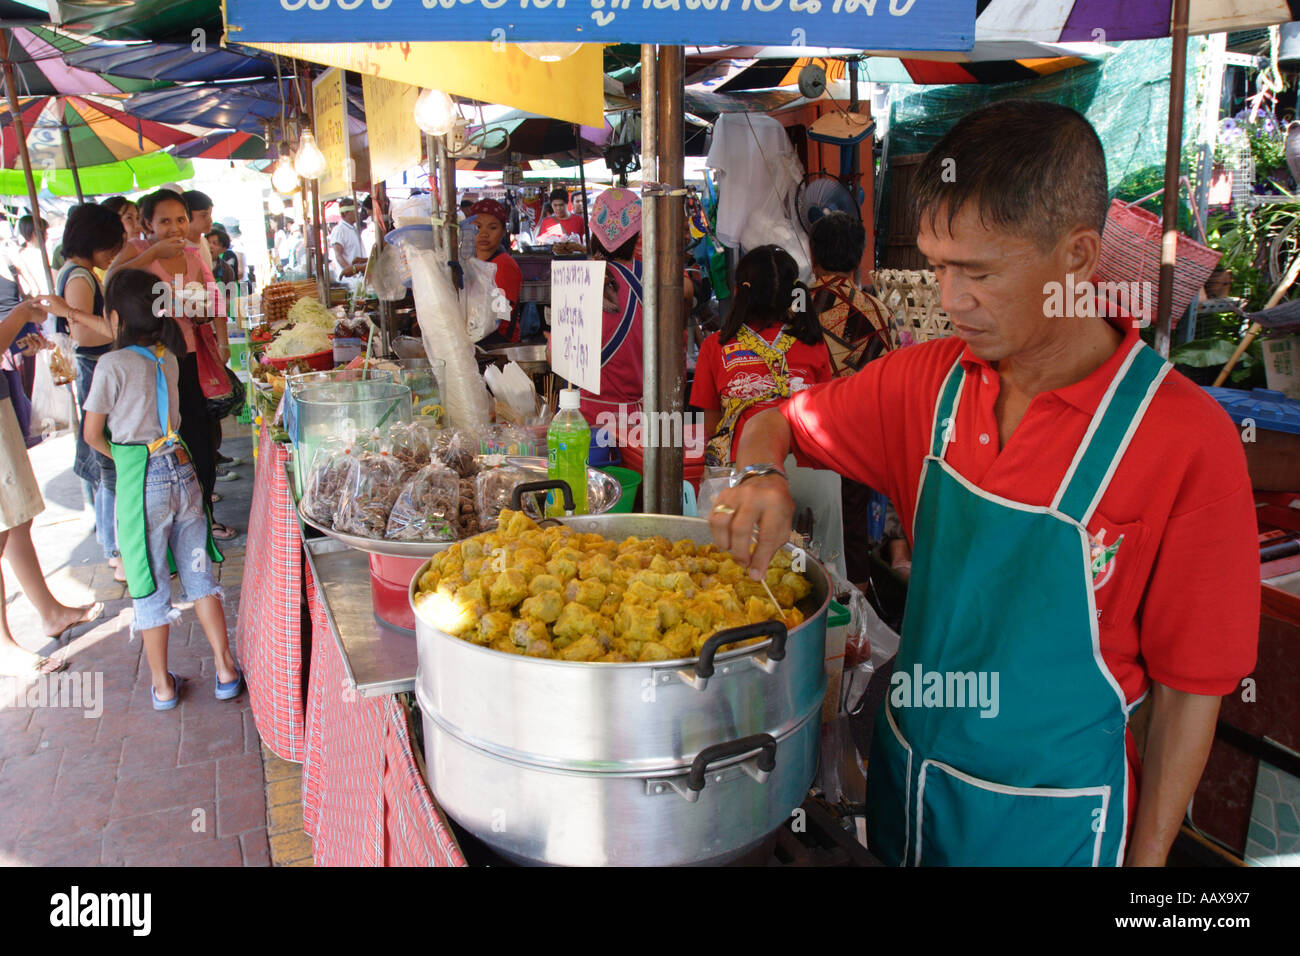 Chatuchak Weekend Market in Bangkok, Thailand - Stock Image